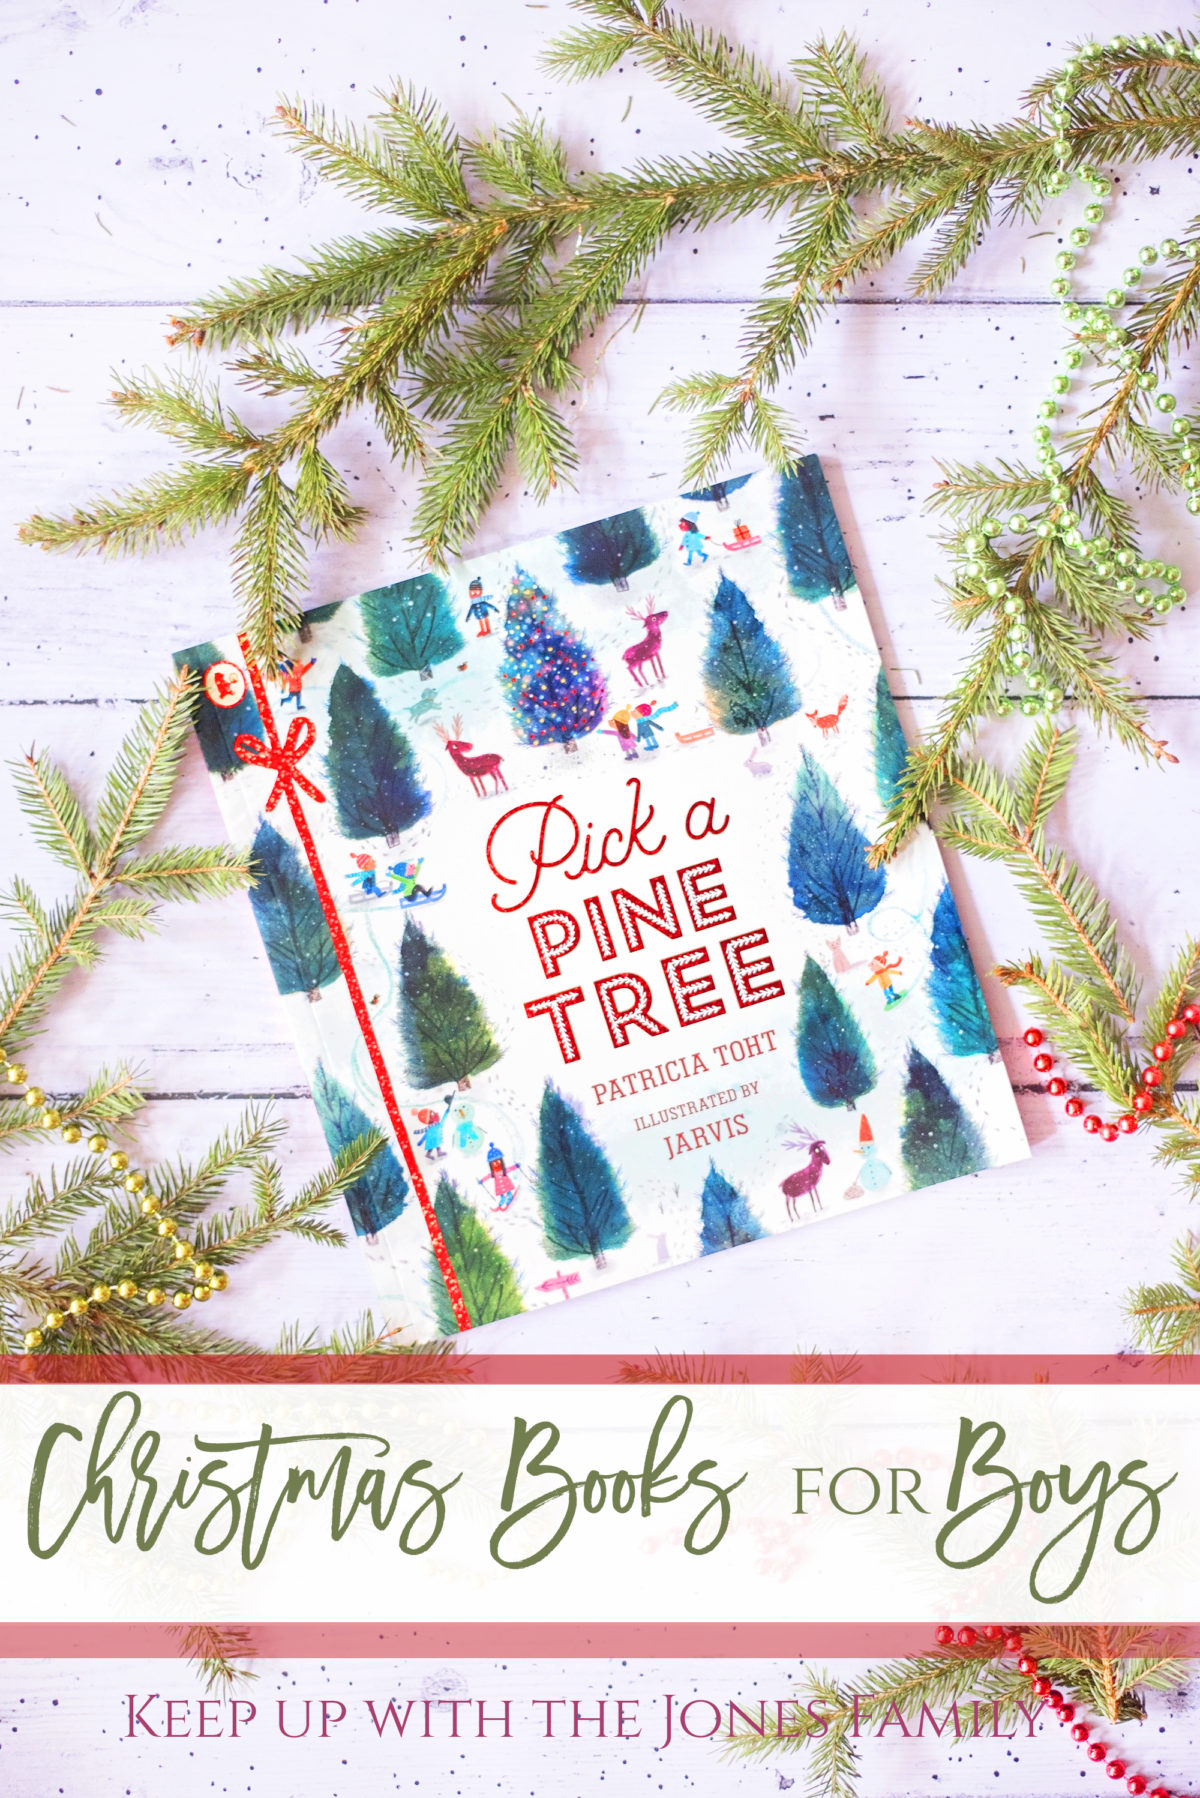 Christmas Books for Boys Pick a PIne Tree Patricia Toht and Jarvis